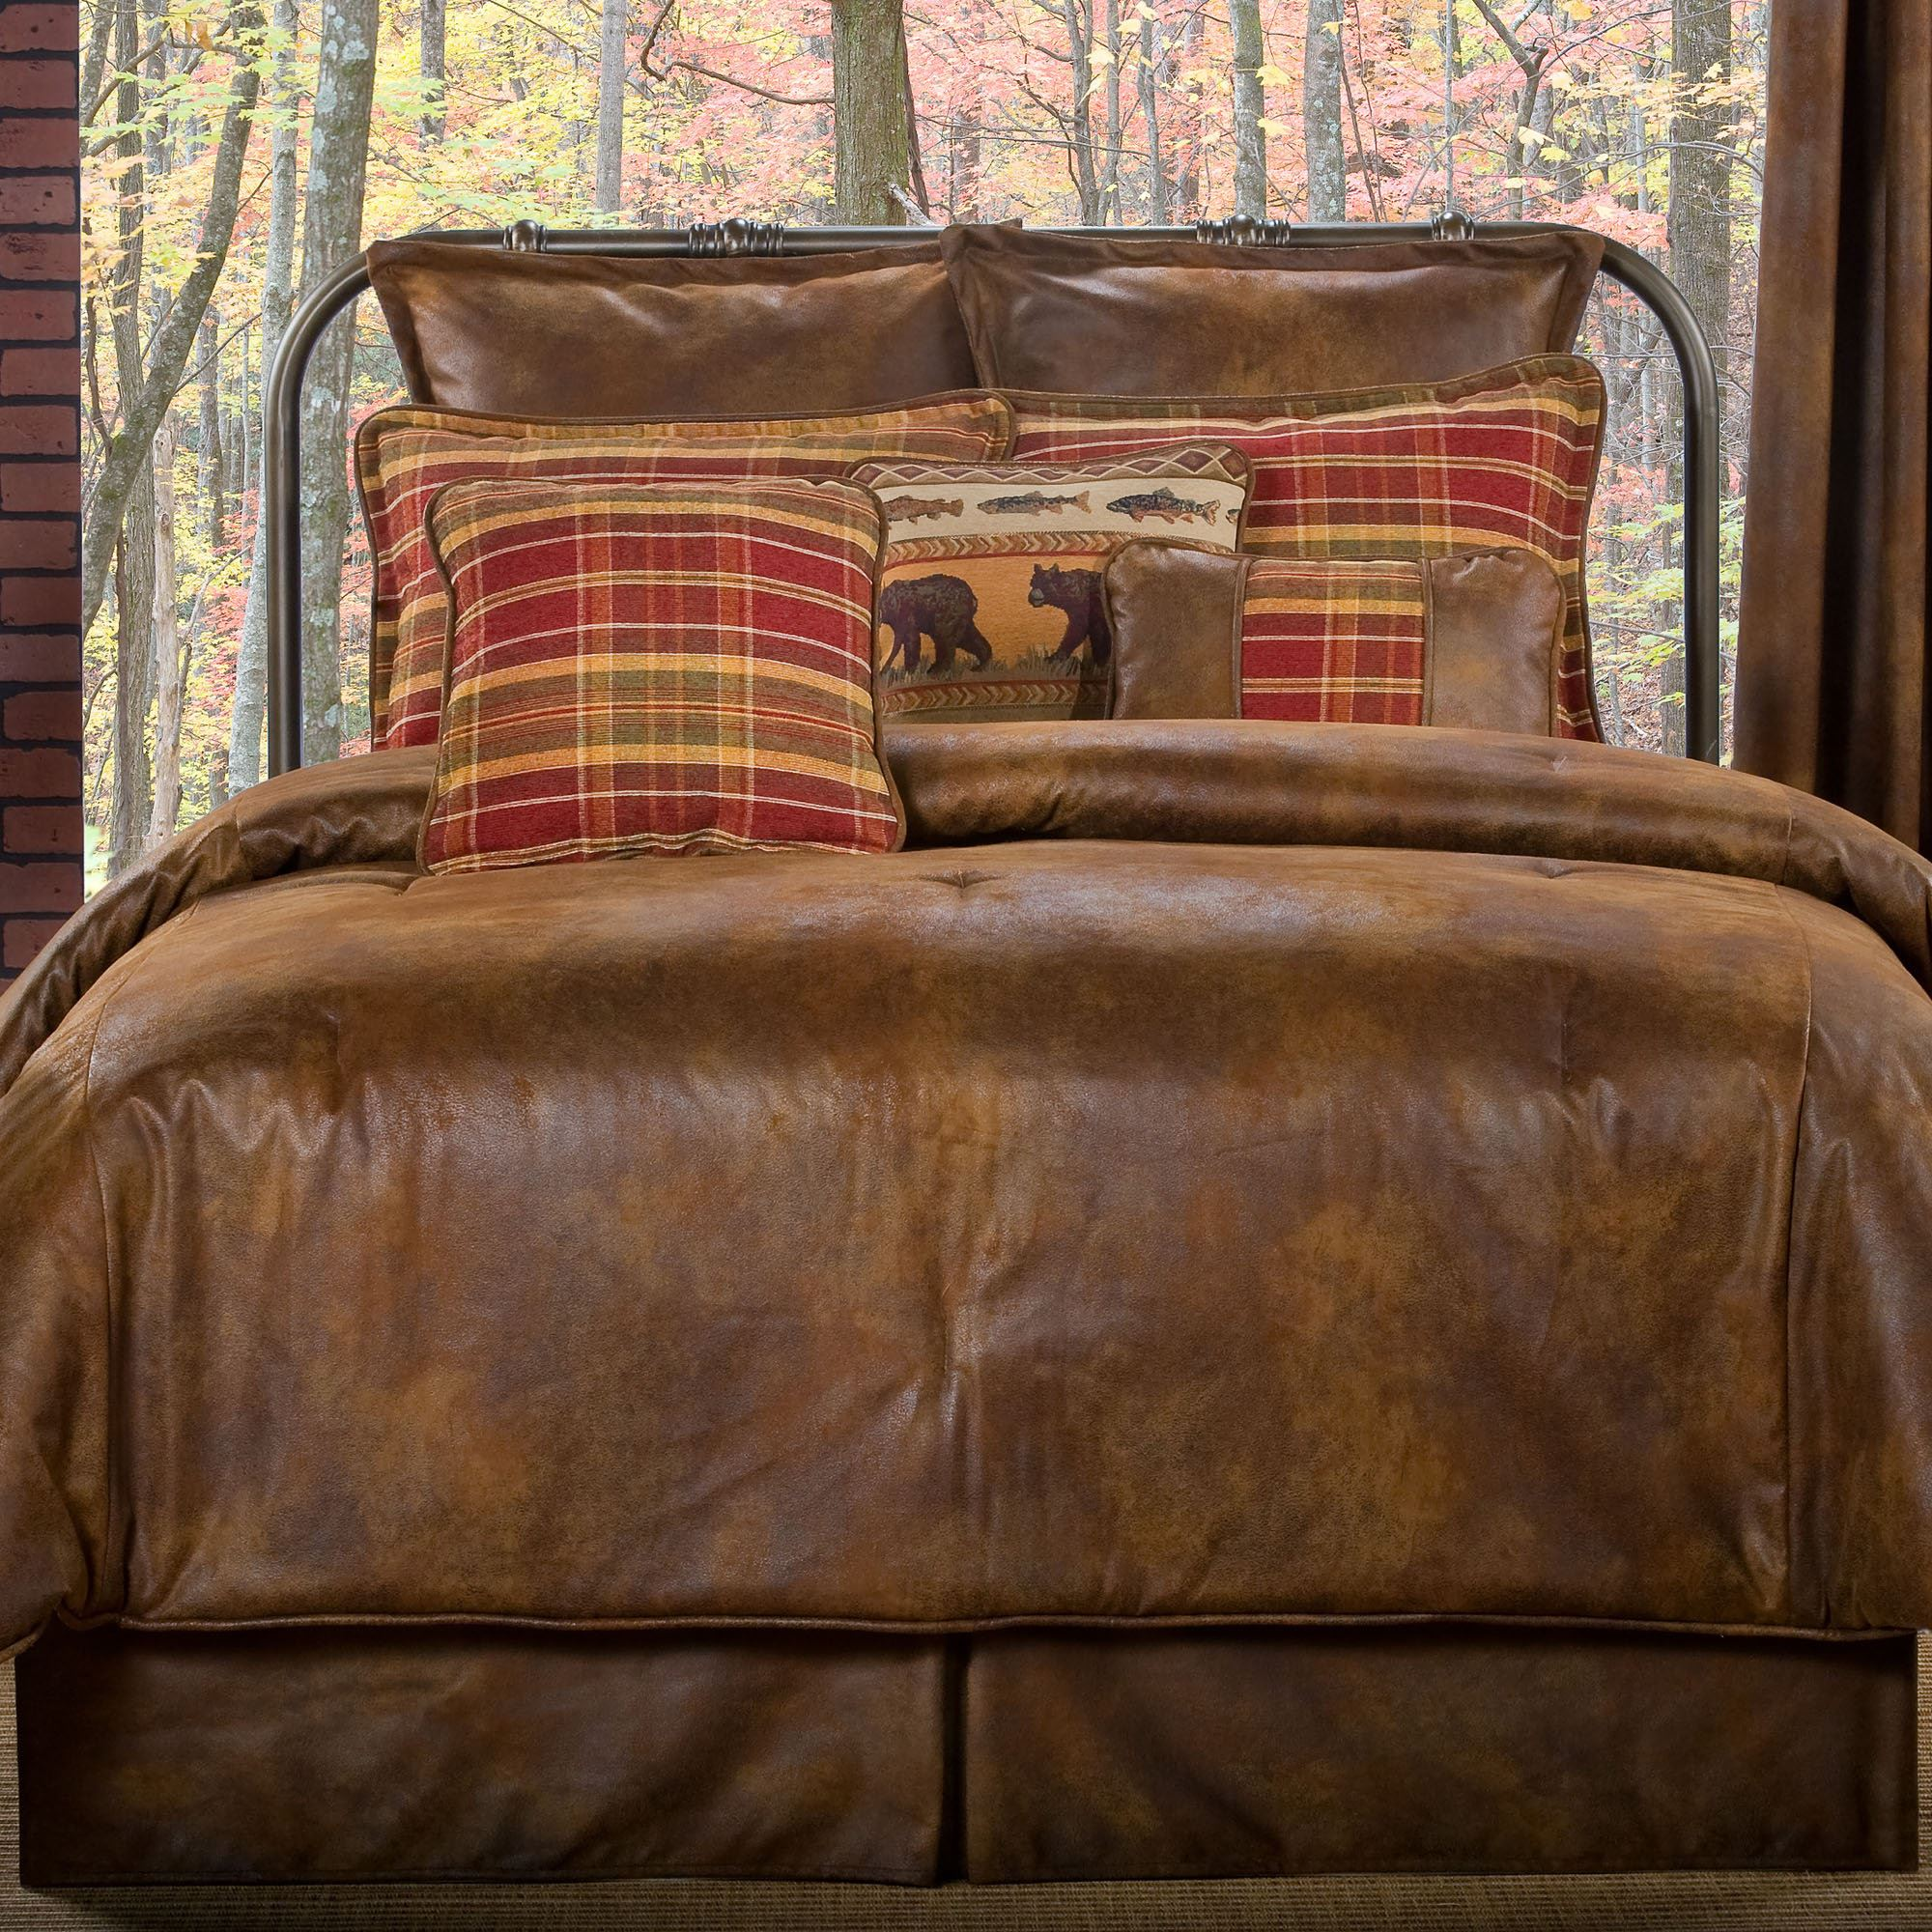 products lifestyle comforter anderson group flag state design comforters new tennessee rustic